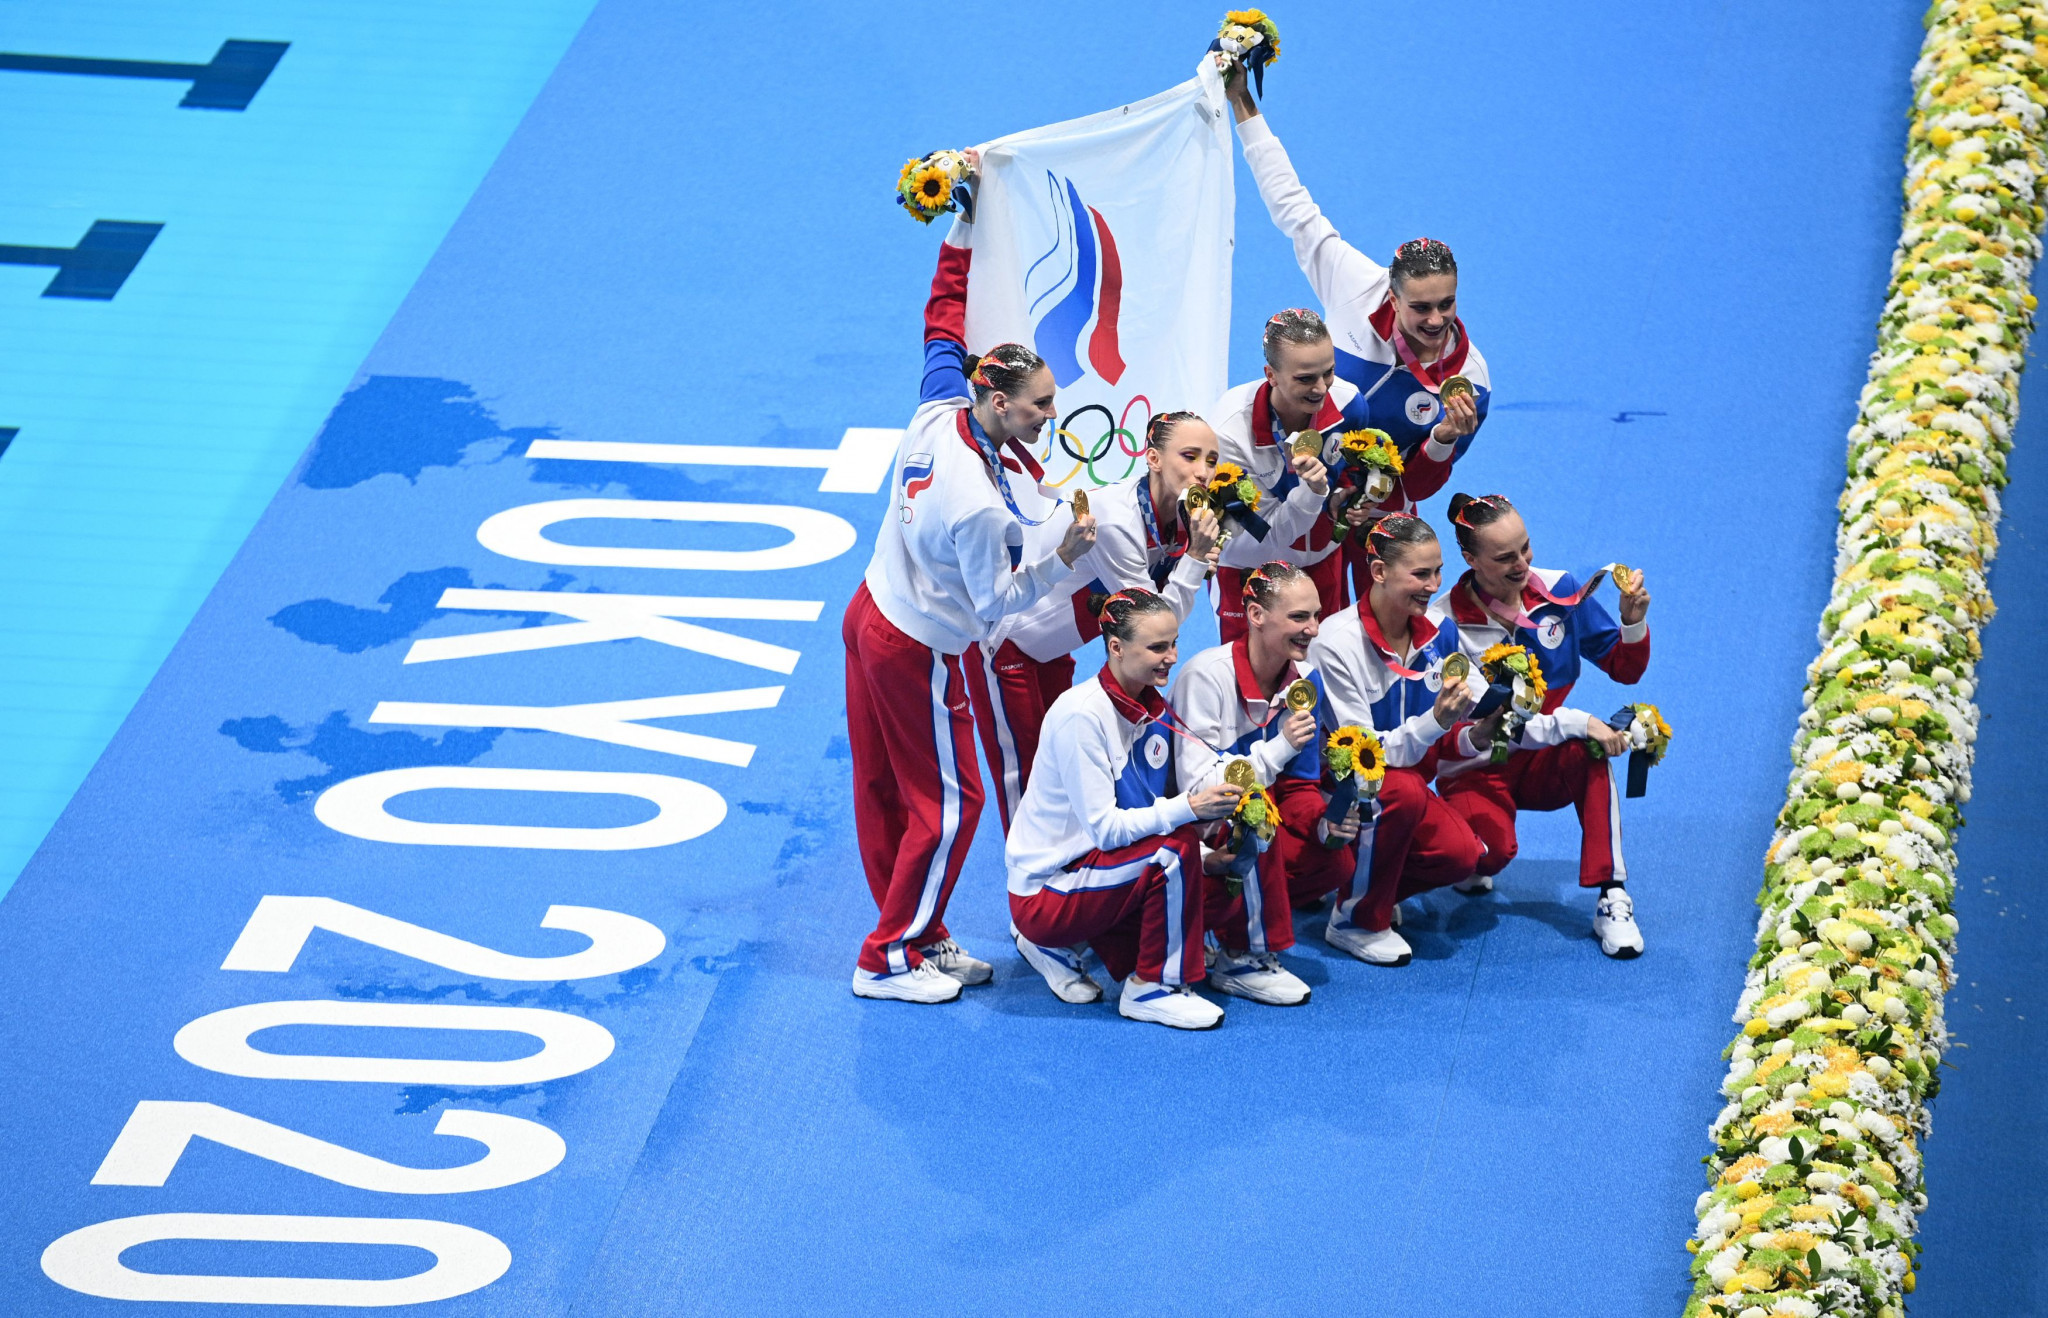 Russian athletes competing at Tokyo 2020 had to compete under the banner of the ROC and the country's flag was banned ©Getty Images